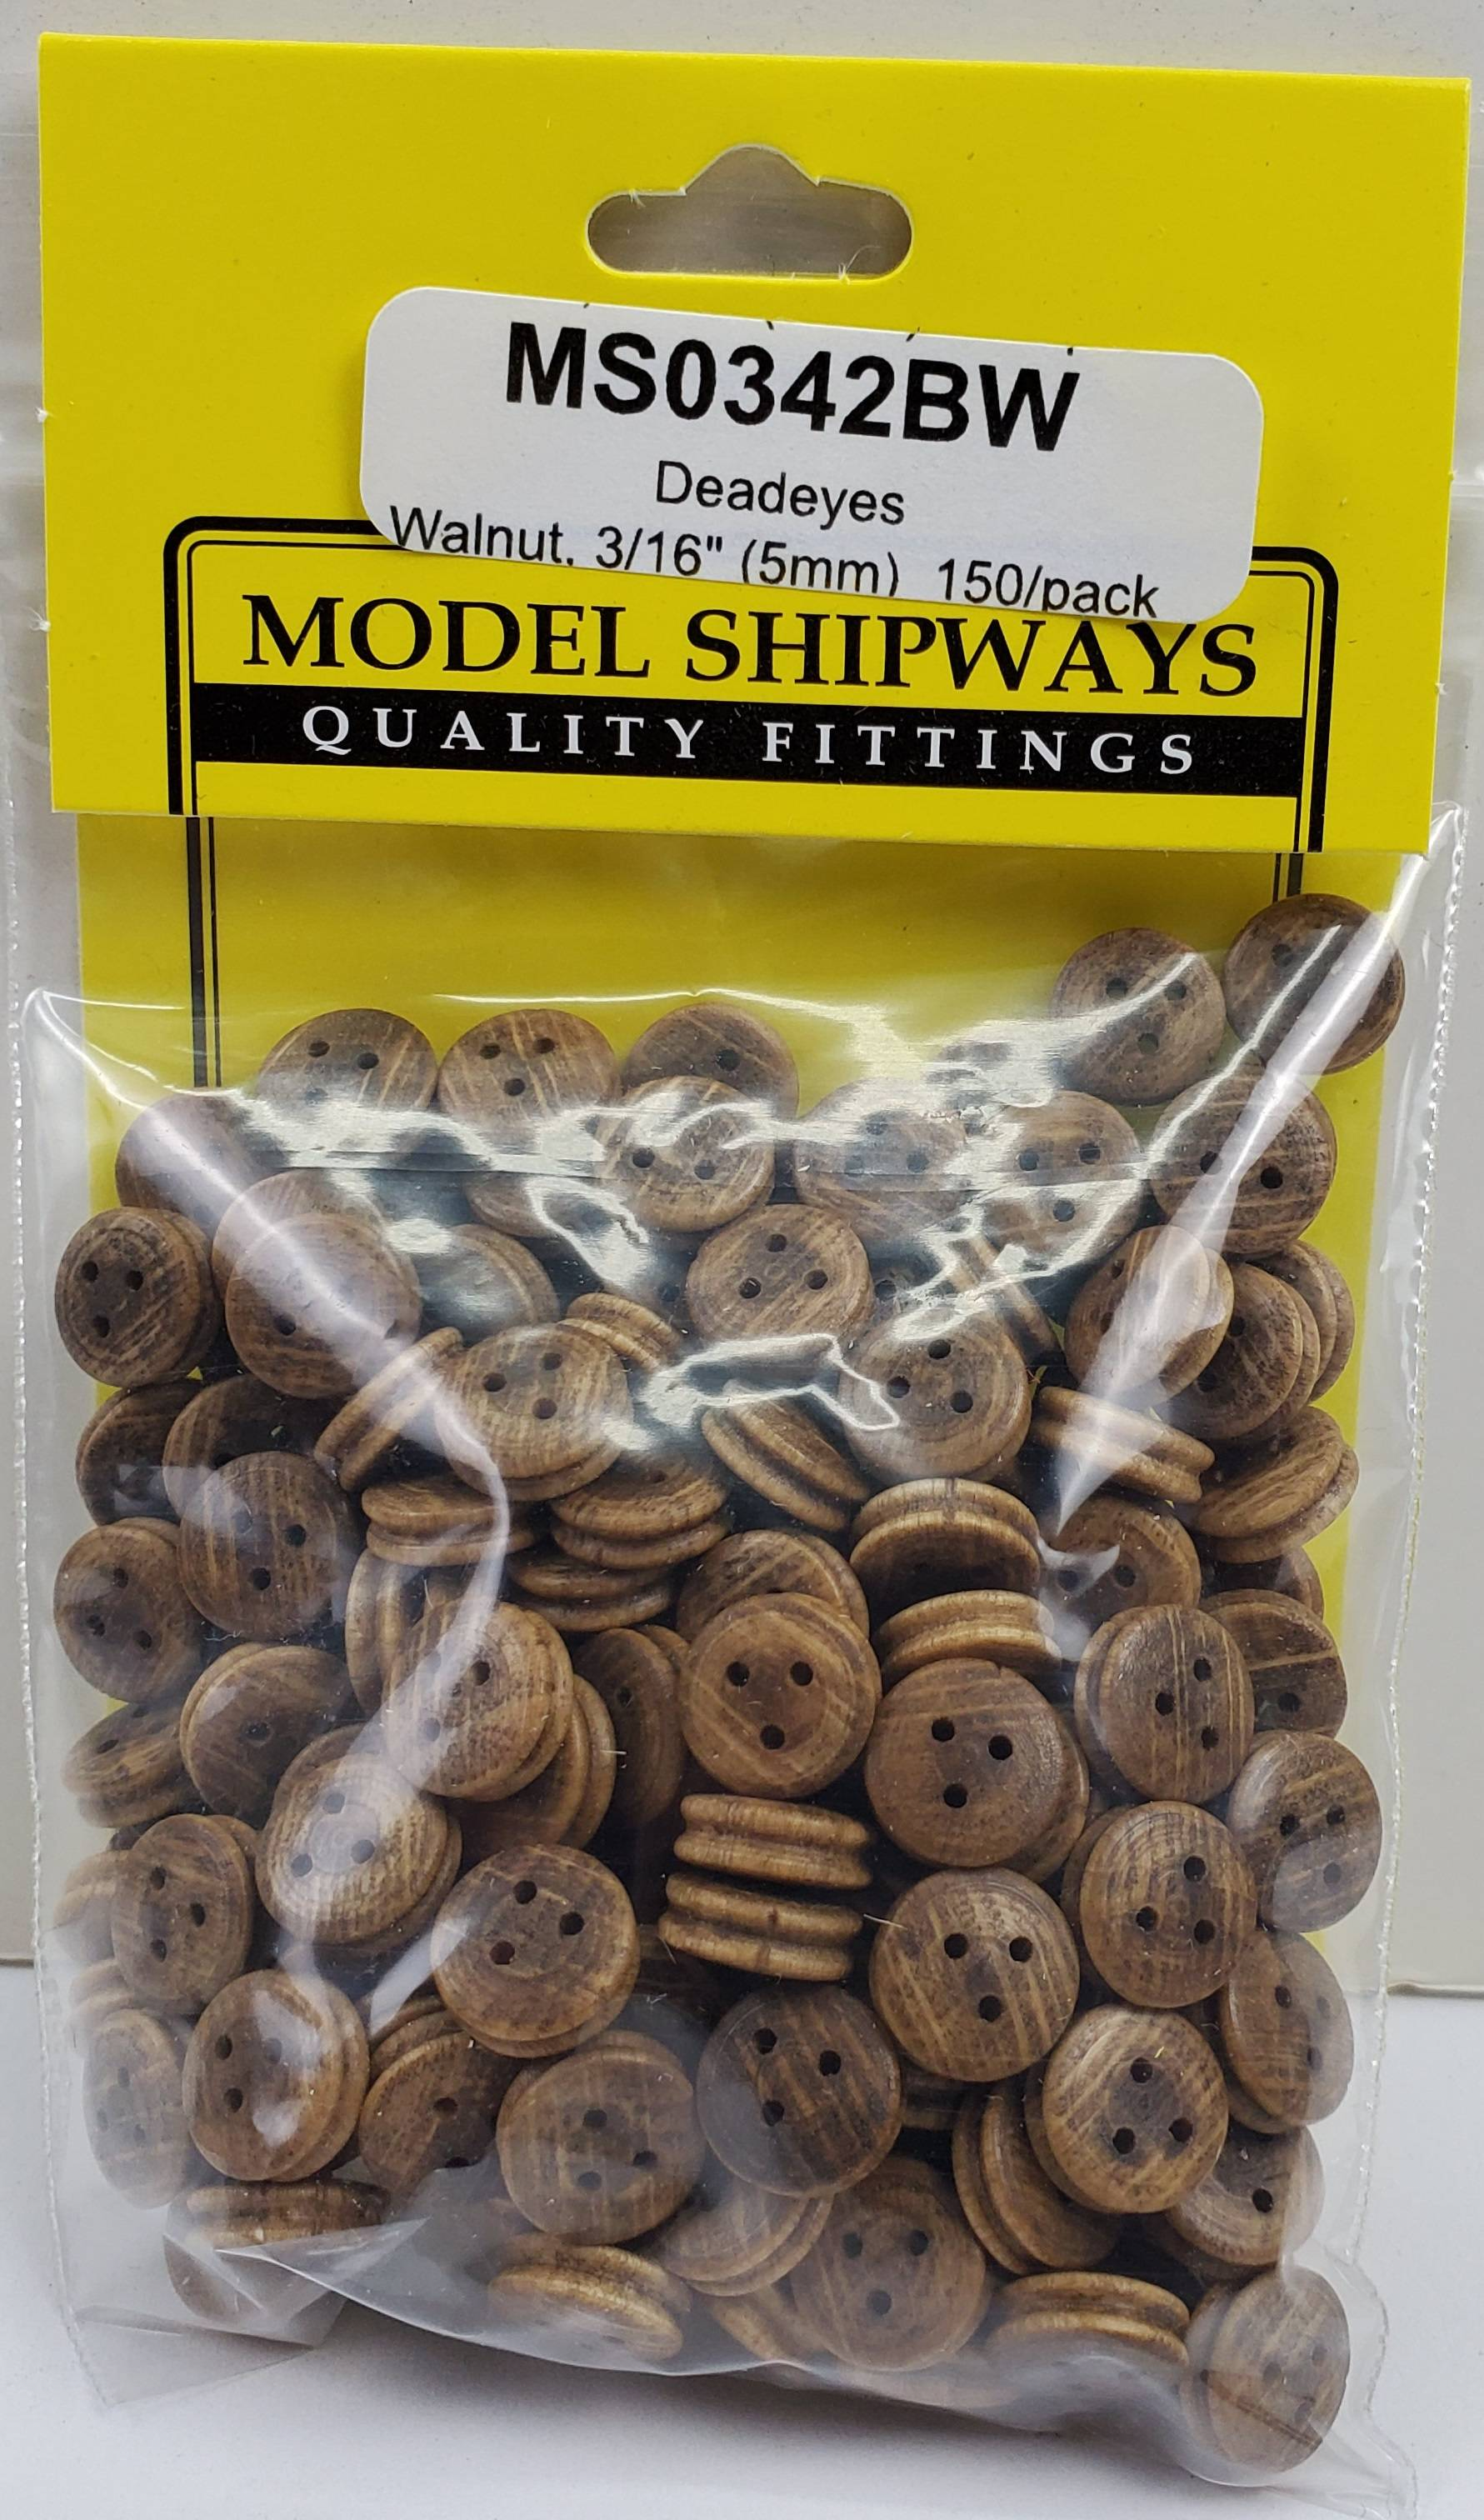 8 MM 3 eyes Deadeyes Pulley Accessories for Wooden Ship Model Kits-20 Pec//packet